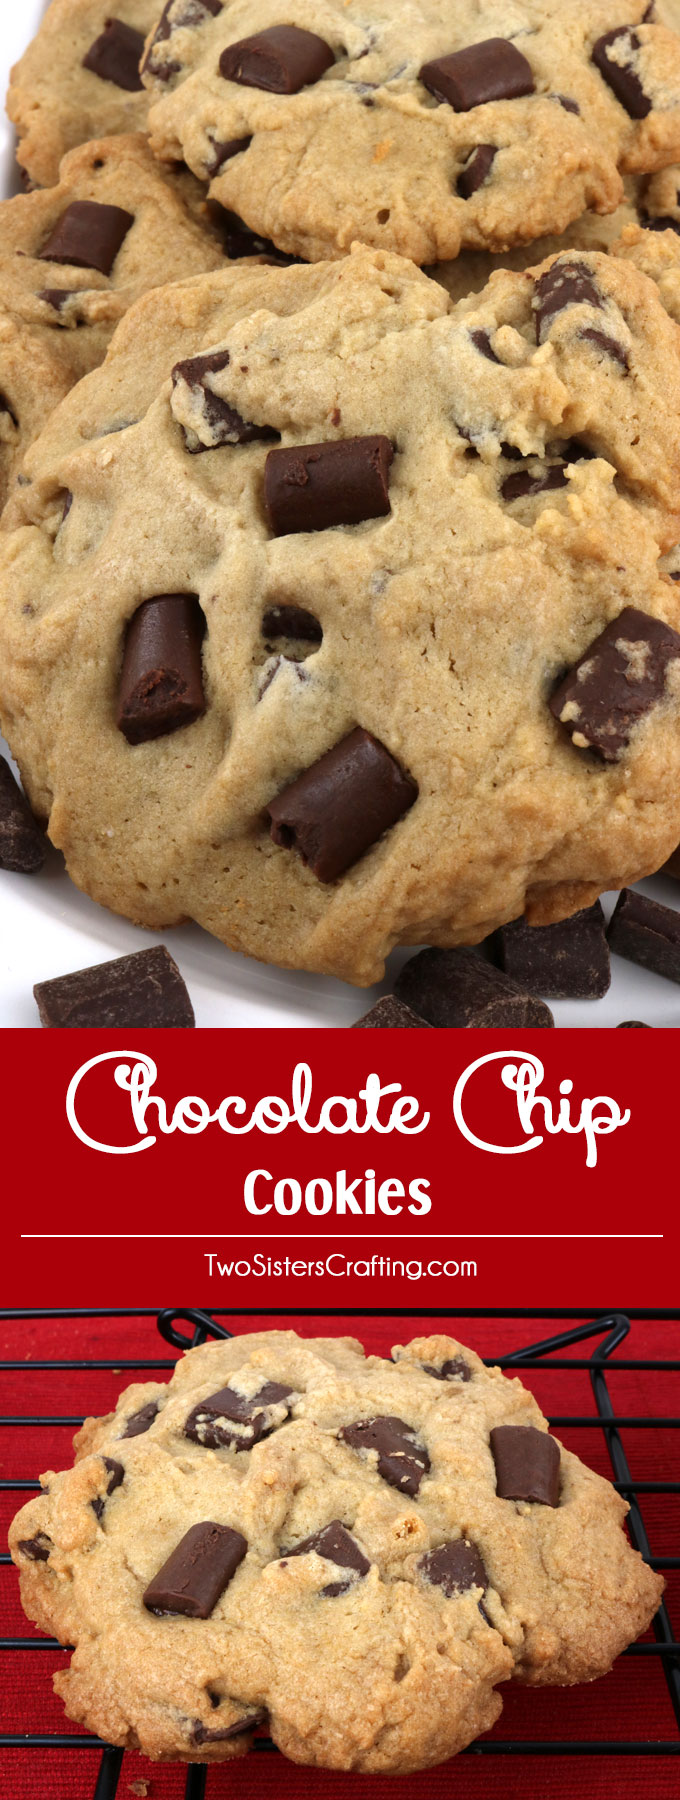 Chocolate Chip Cookies - Two Sisters Crafting